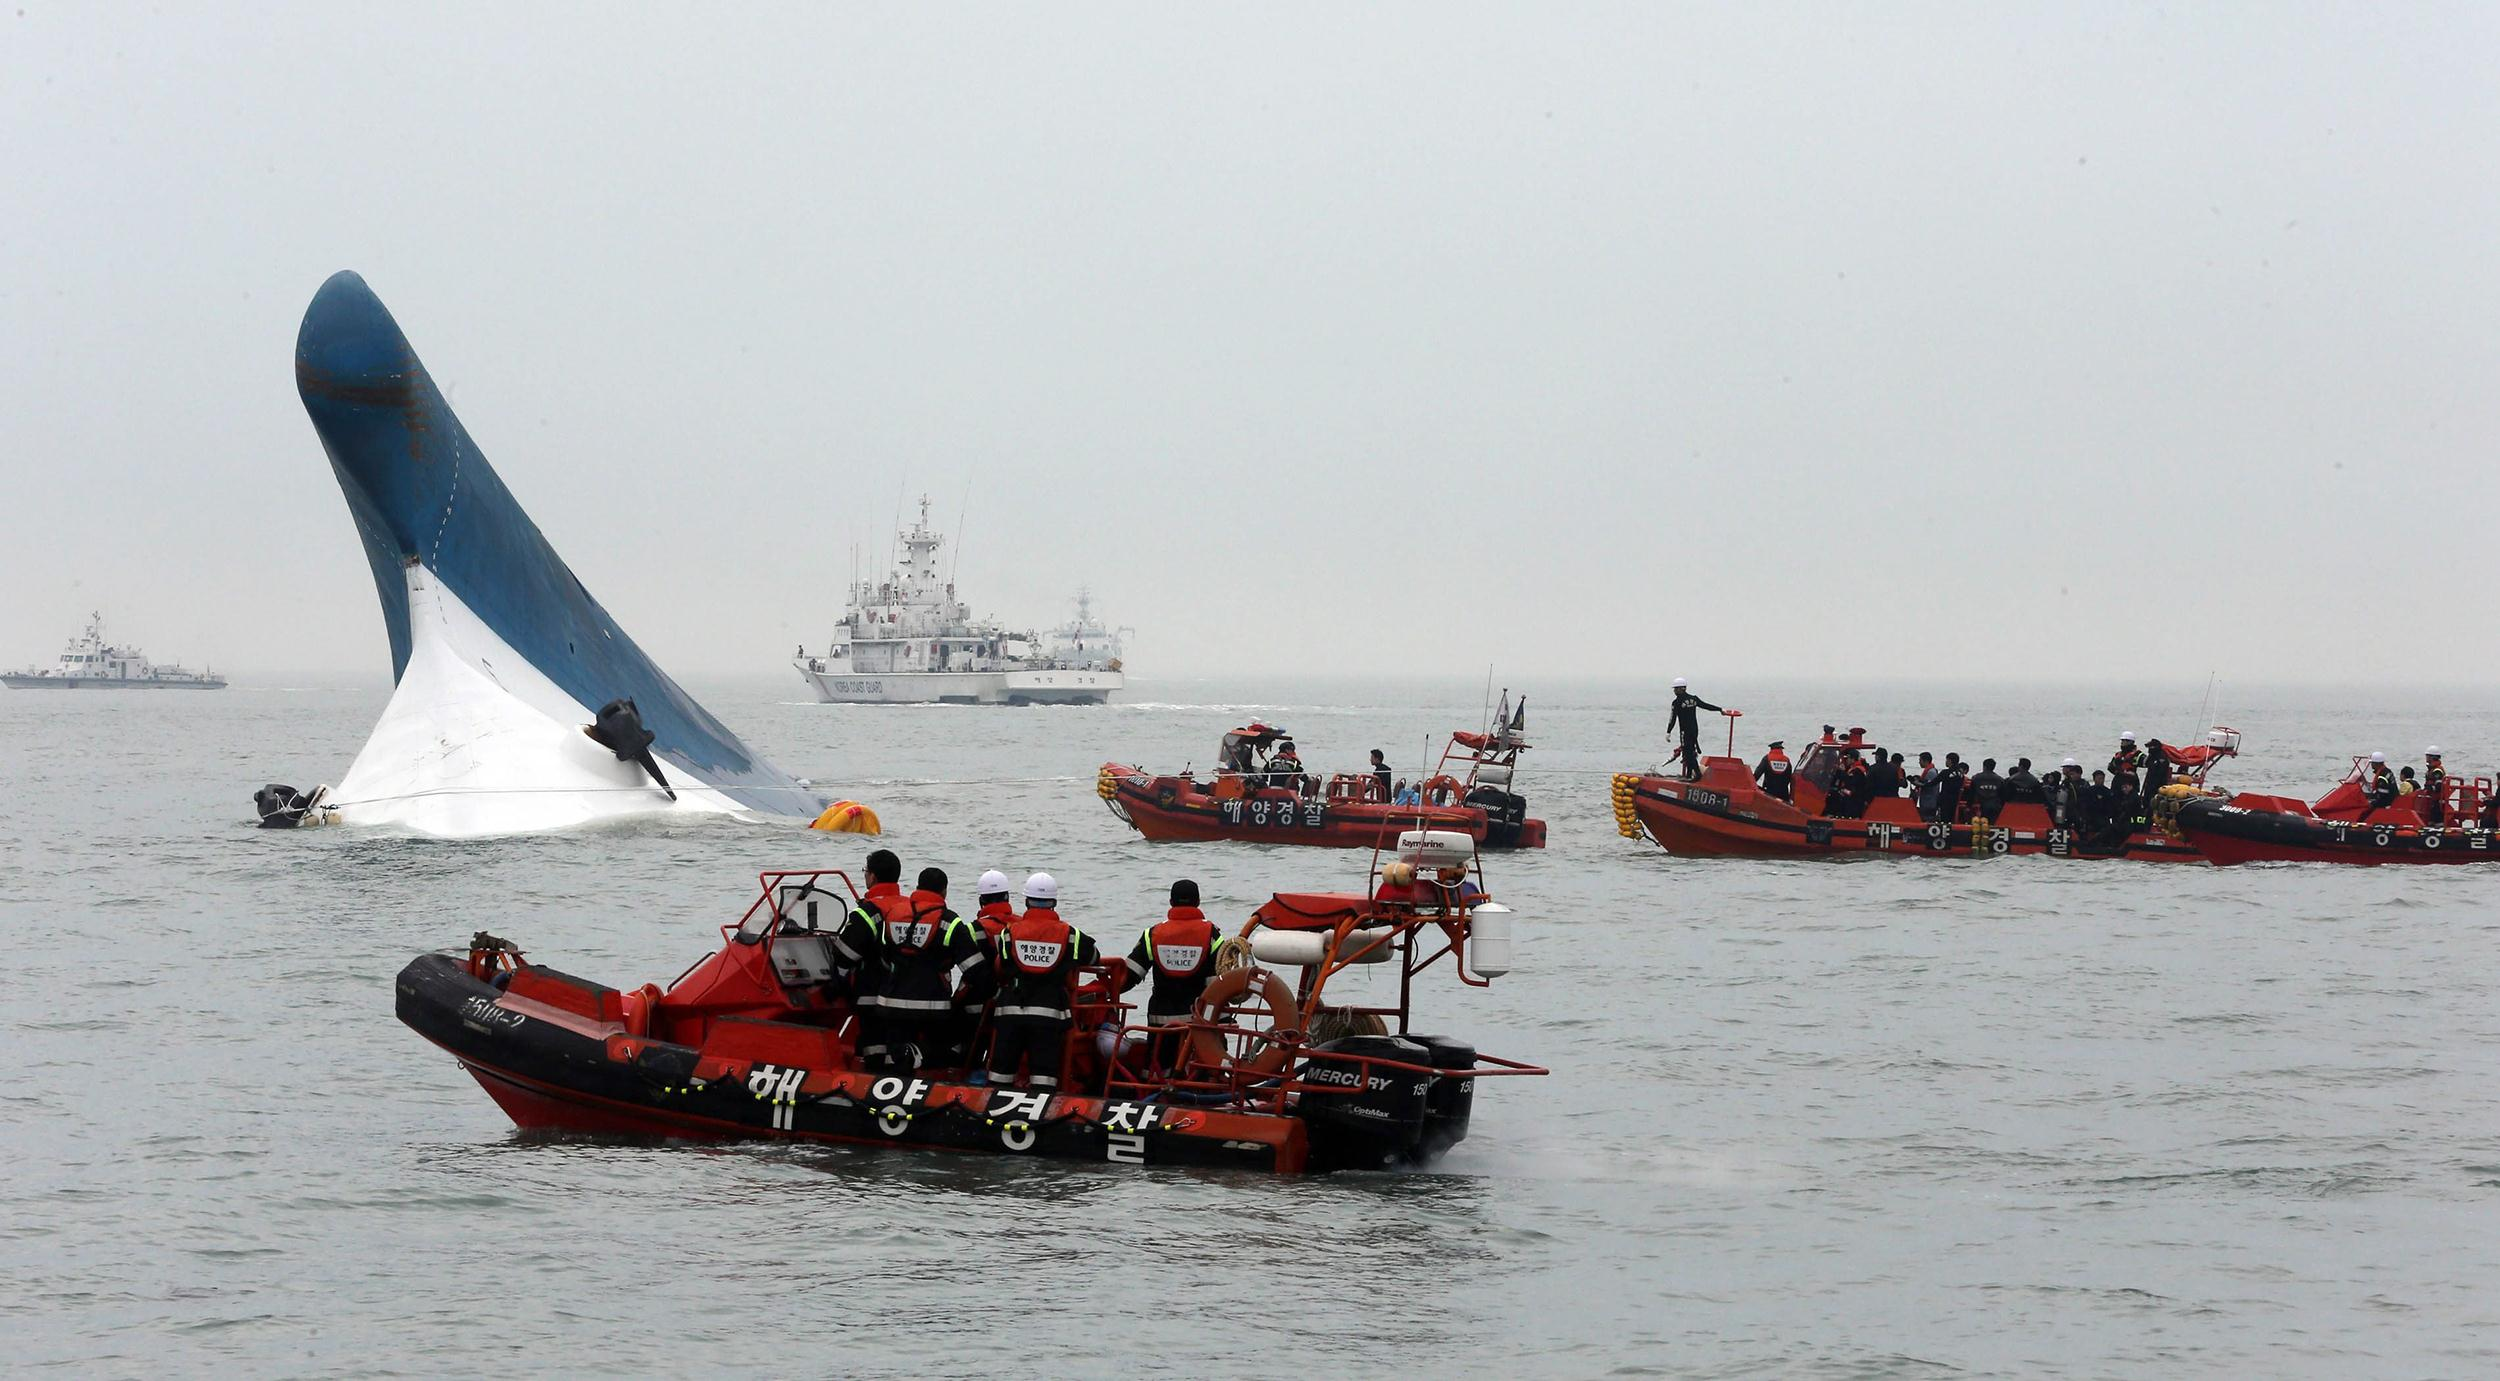 Image: South Korean Coast Guard officers conduct a last-minute rescue operation around the passenger ferry Sewol sinking in waters off the southwestern coast of South Korea, April 16.